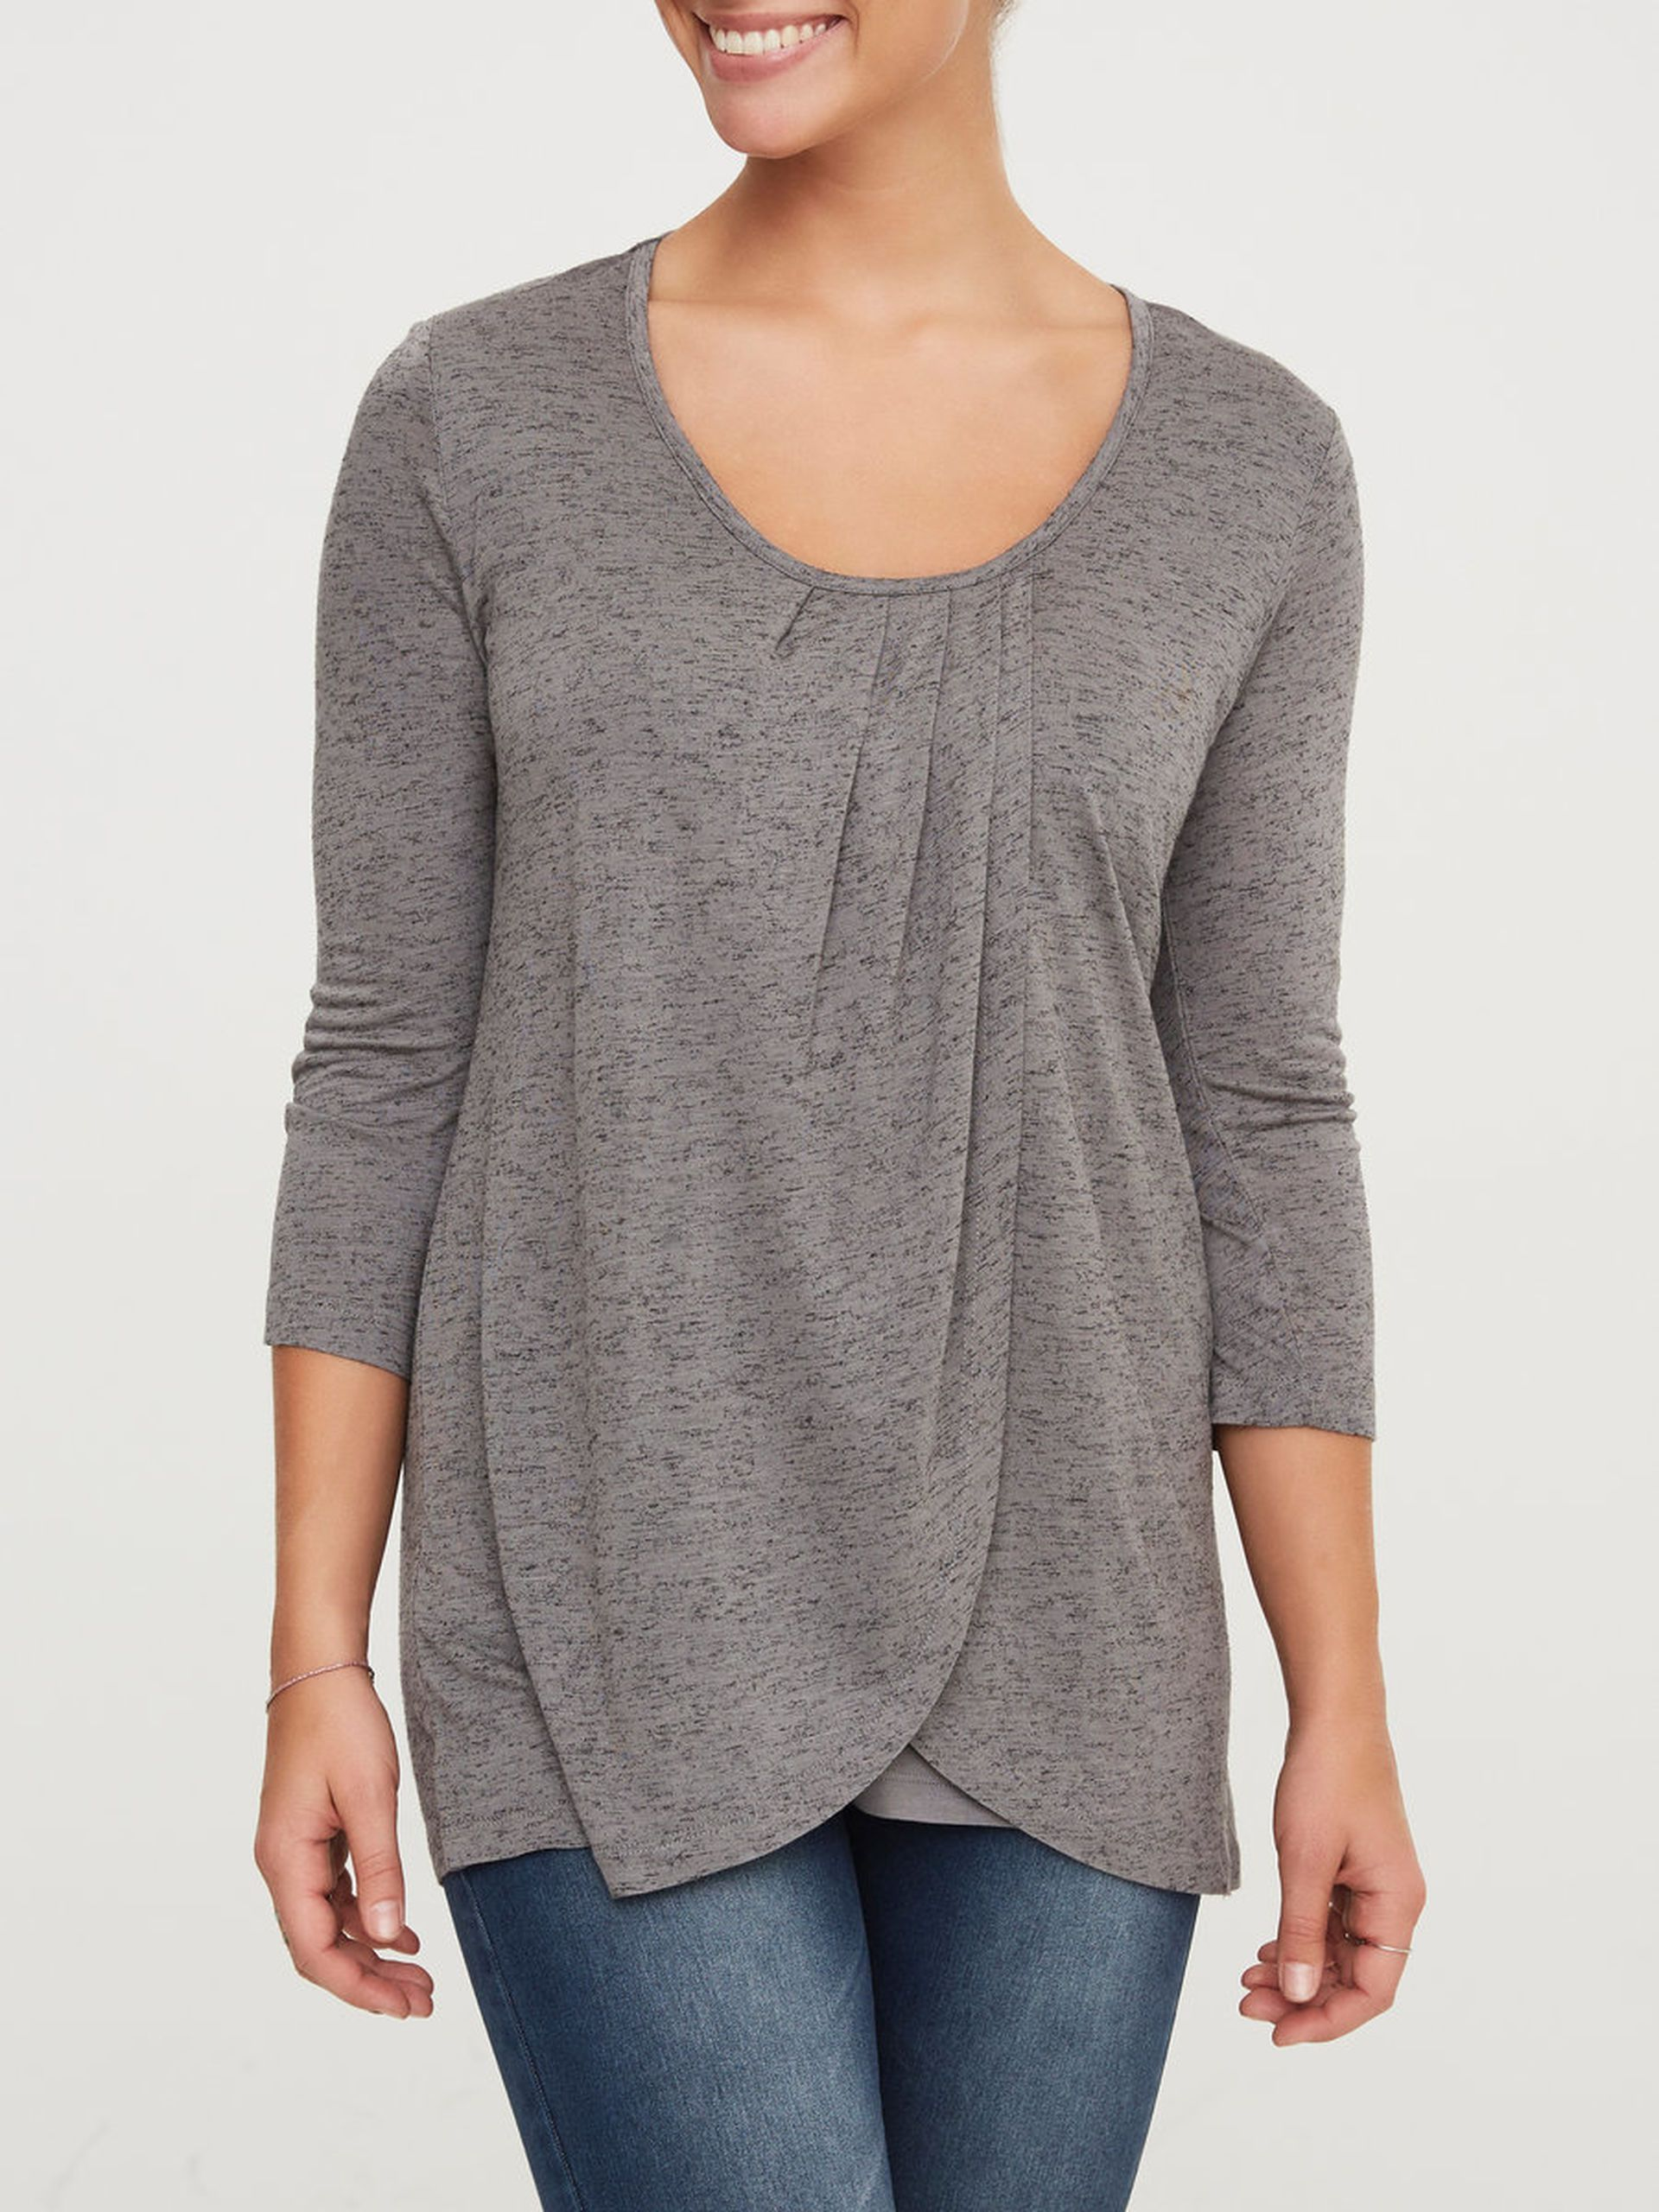 JERSEY PLEATED NURSING TOP, 3/4 SLEEVED